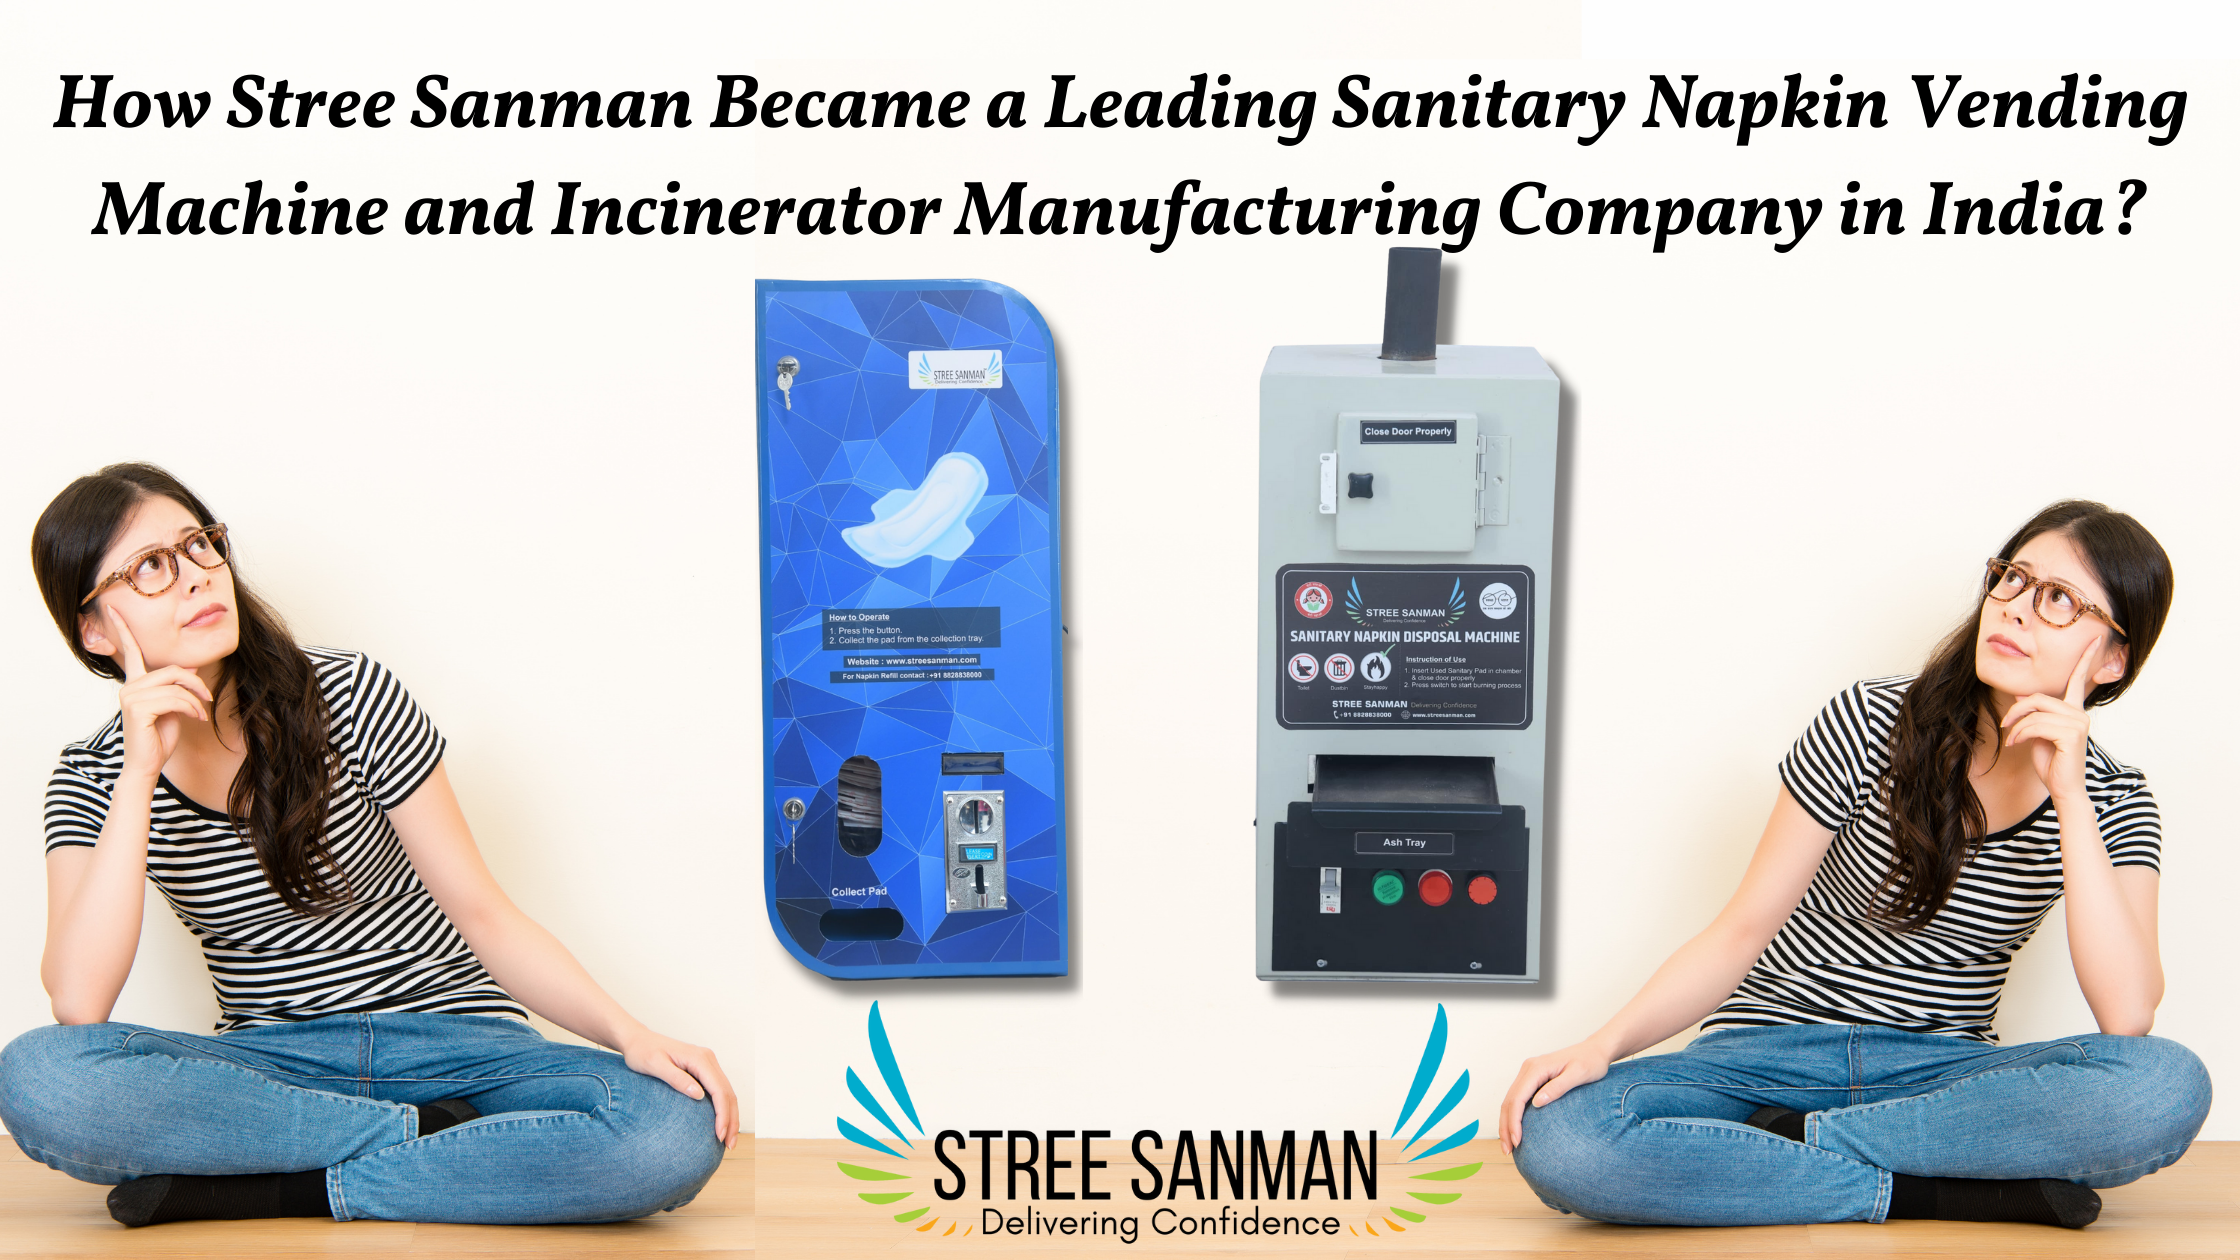 How Stree Sanman Became a Leading Sanitary Napkin Vending Machine and Incinerator Manufacturing Company in India